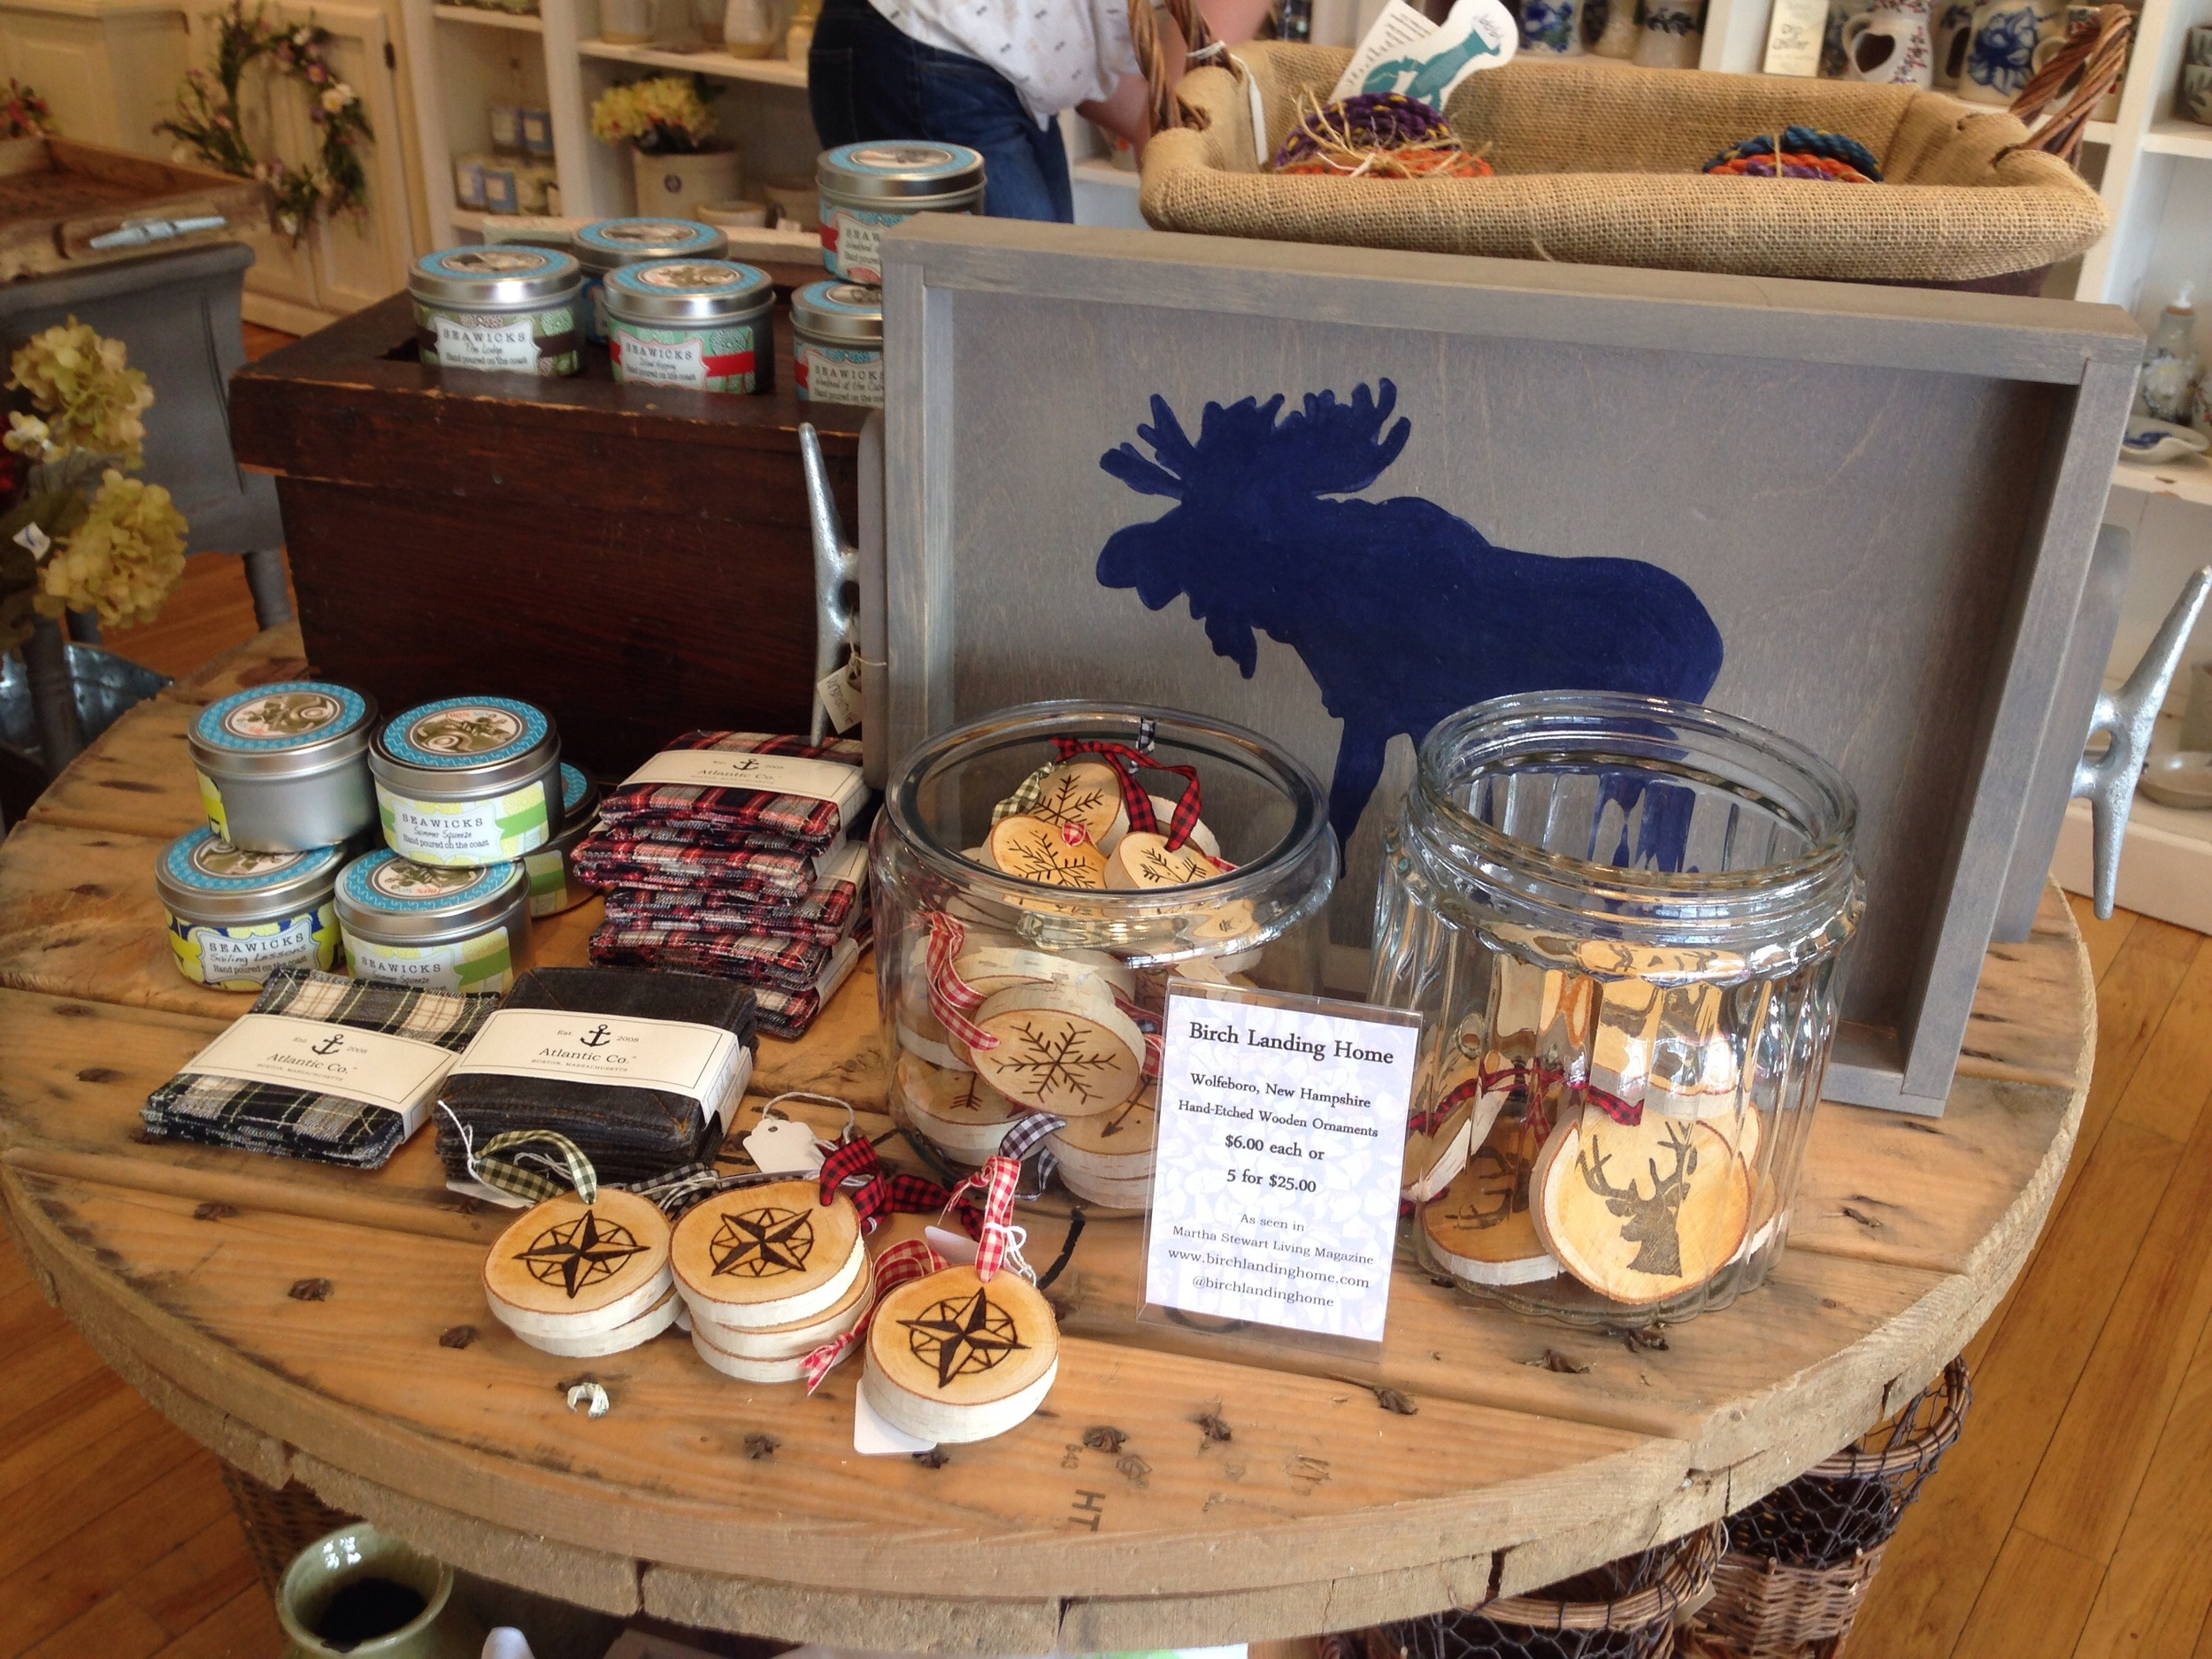 Some of the New England made products at Straw Cellar.